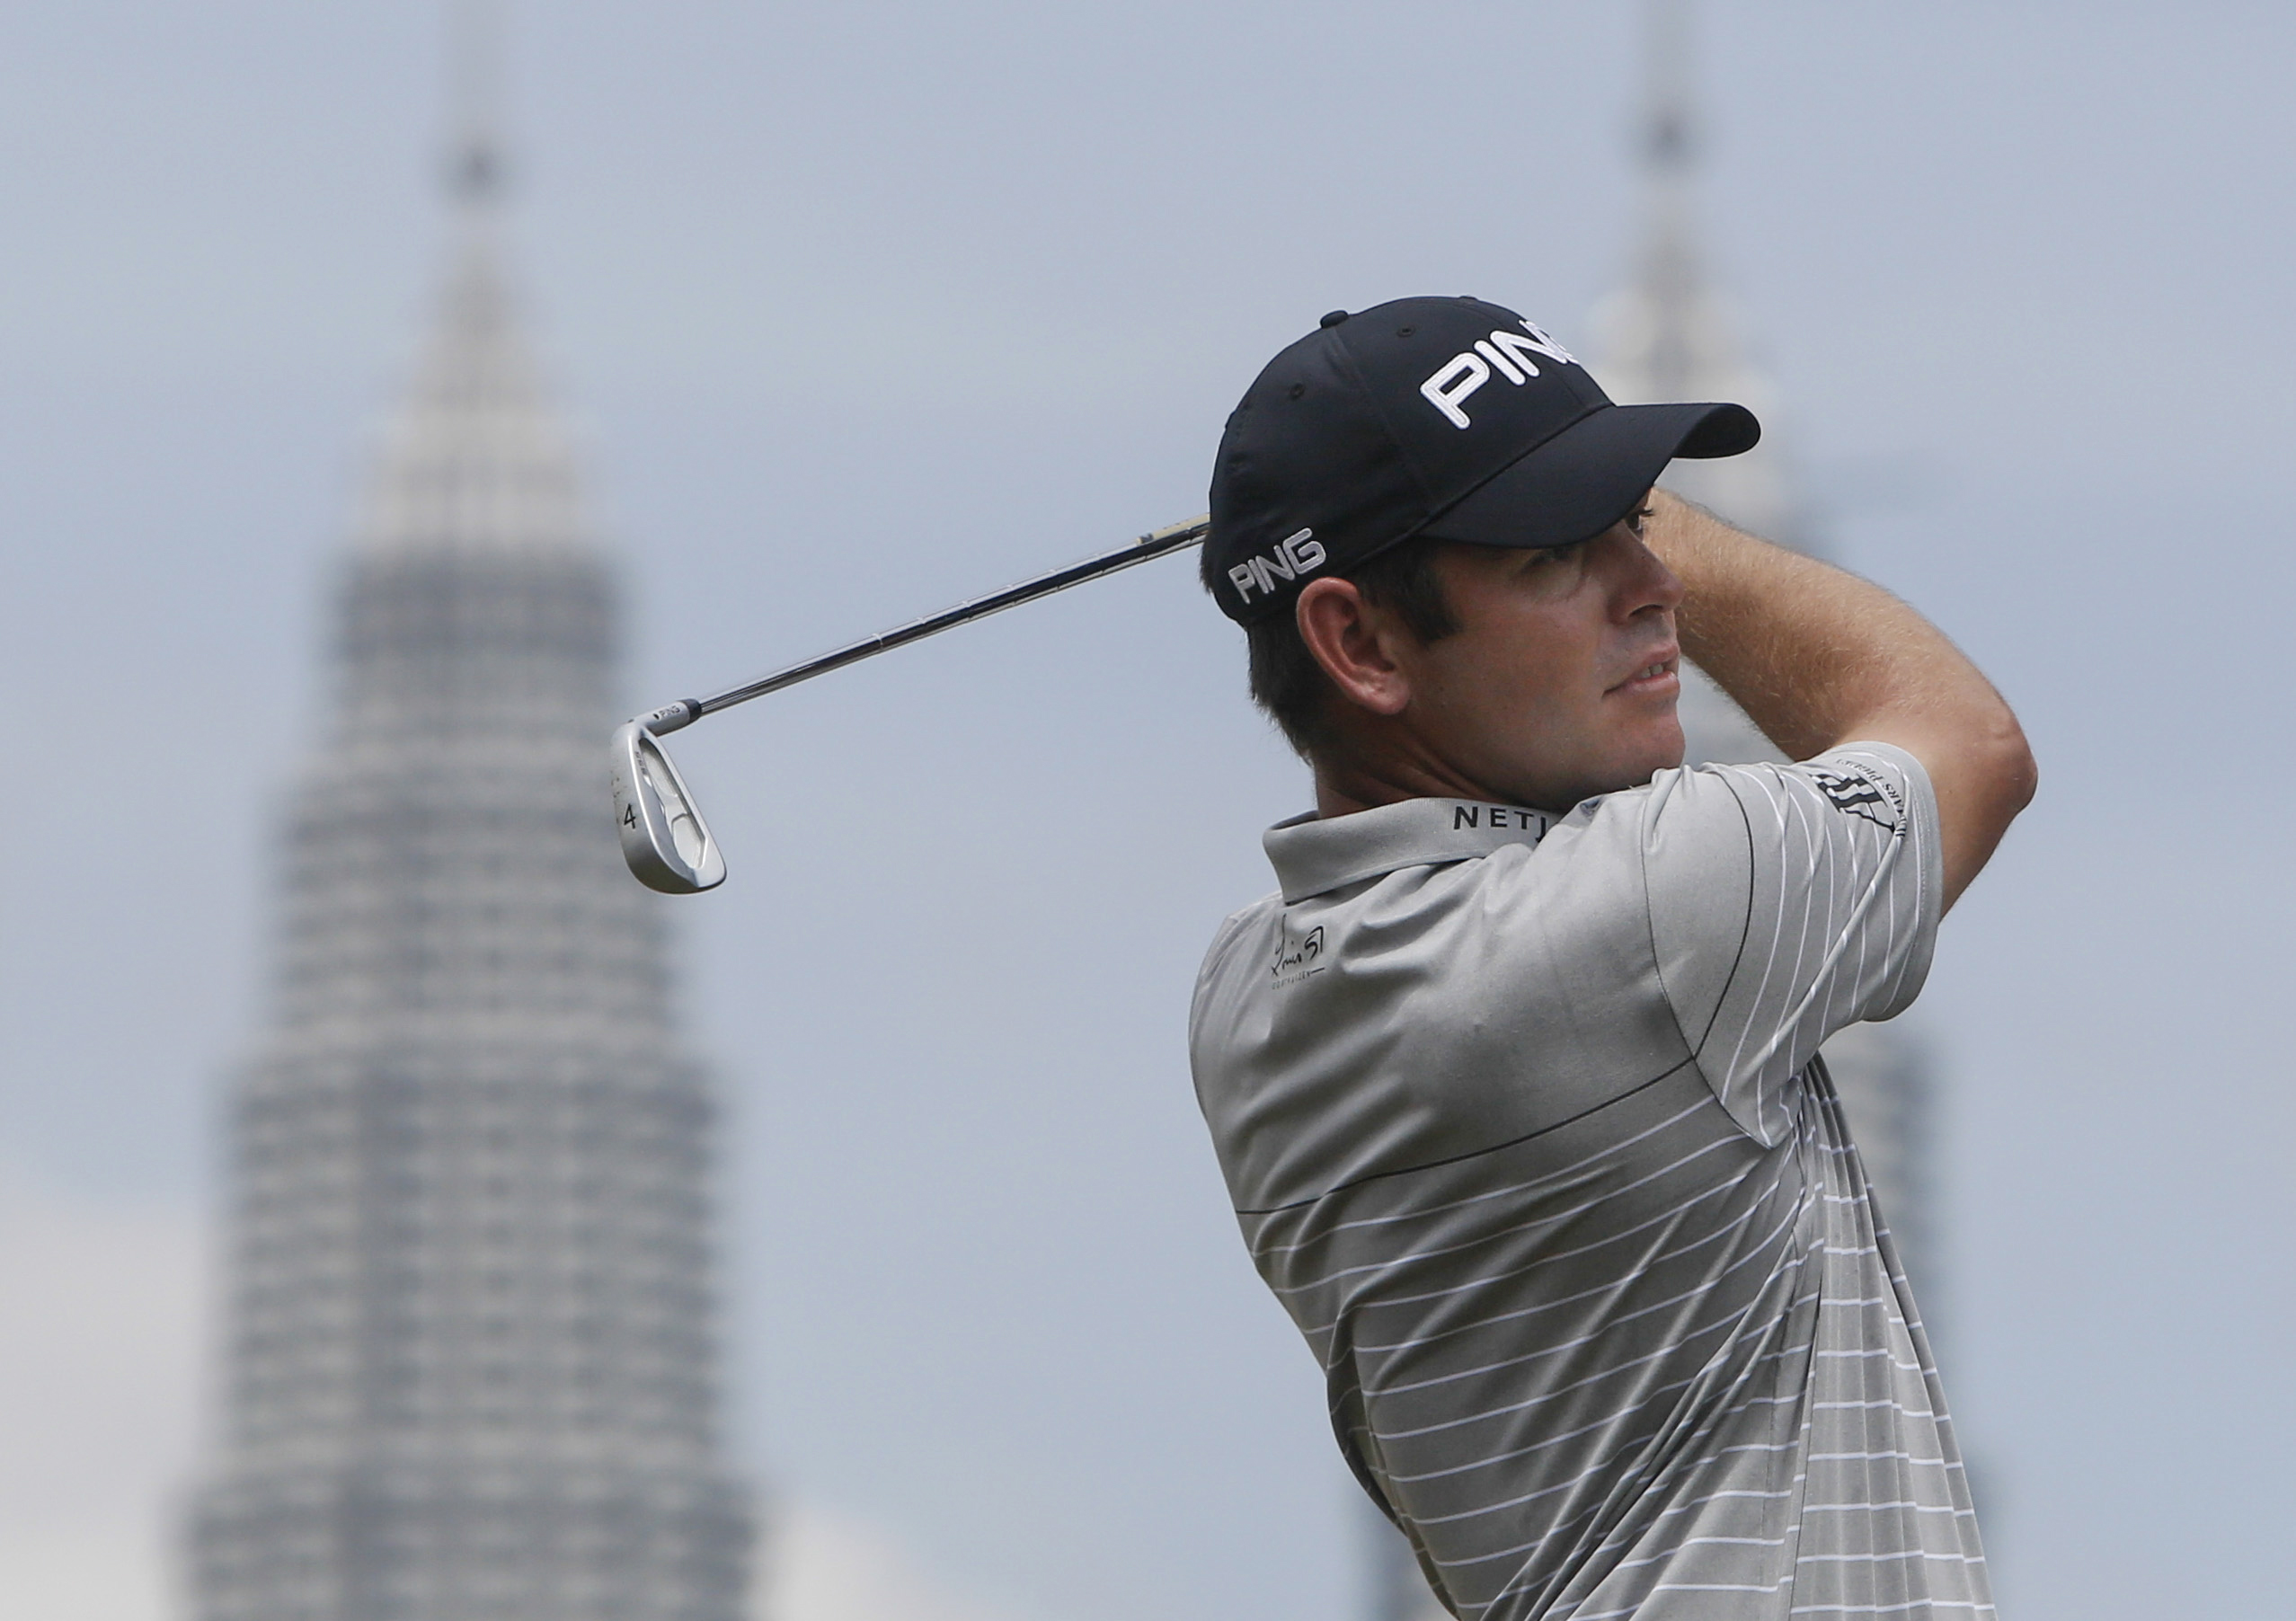 Louis Oosthuizen of South Africa follows his shot from the tenth hole during the third round of the Maybank Championship golf tournament in Kuala Lumpur, Malaysia, on Saturday, Feb. 20, 2016. (AP Photo/Joshua Paul)